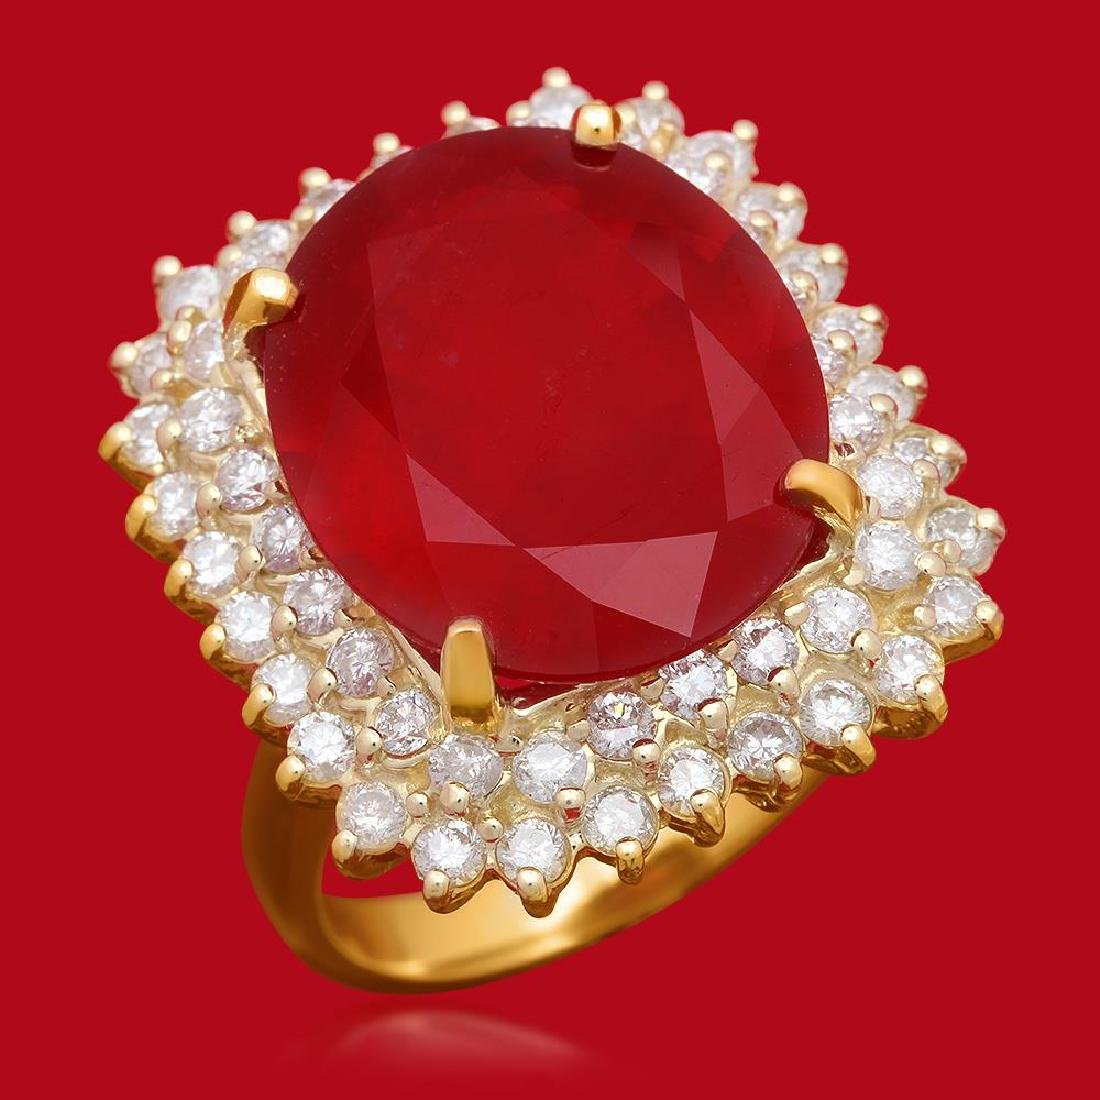 14K Gold 14.12ct Ruby 1.74ct Diamond Ring